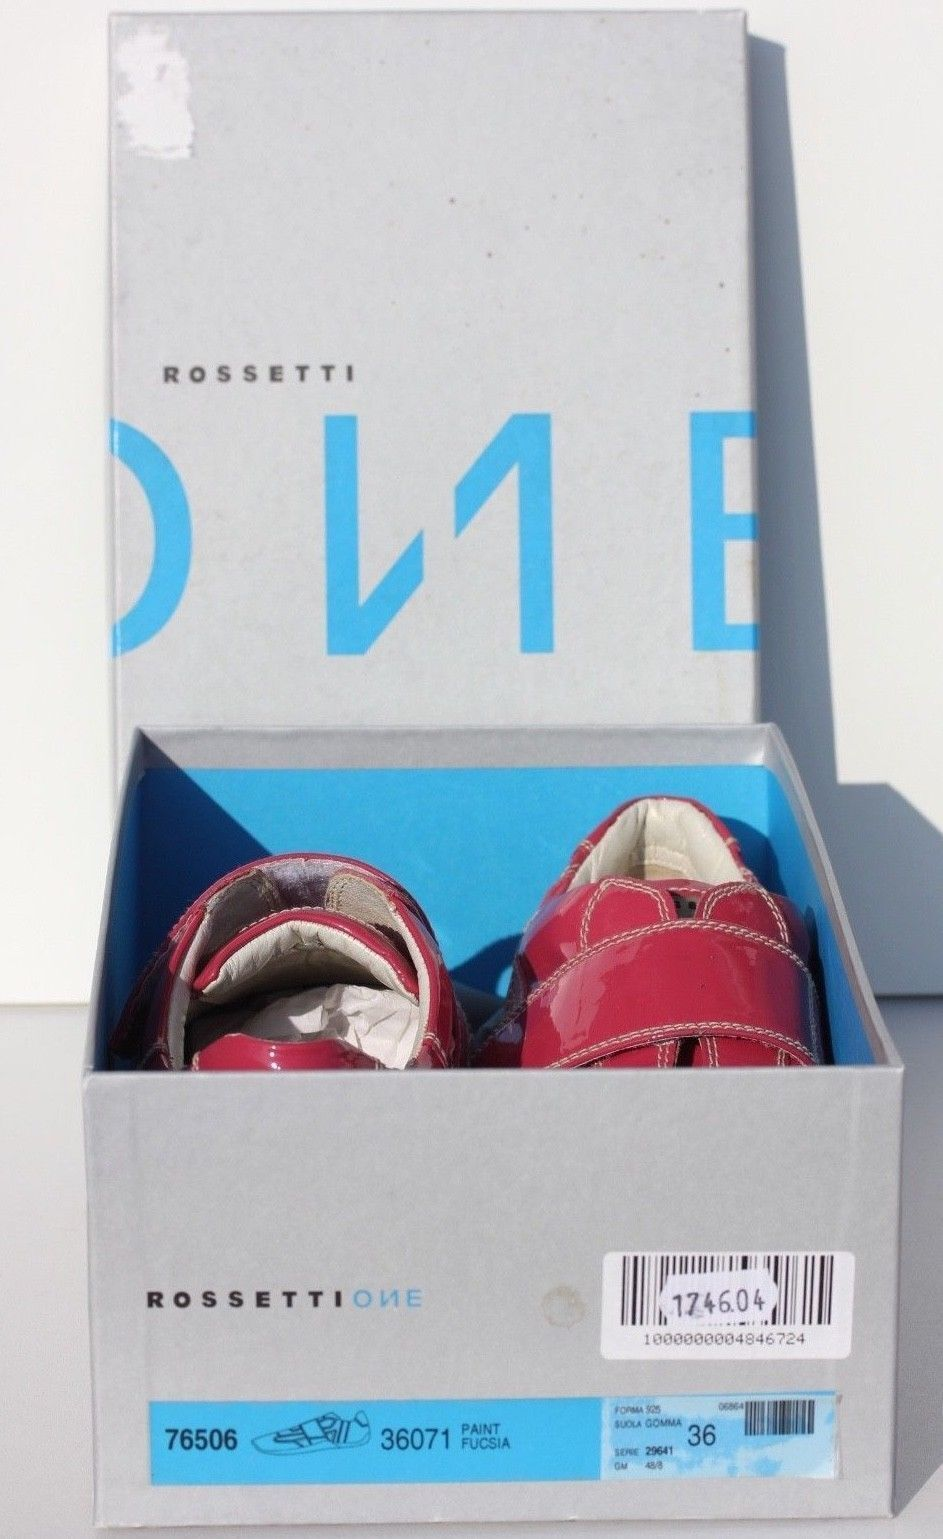 SNEAKERS pinkS WOMAN - ROSSETTI ONE - SIZE 36 - VERY BEL CONDITION